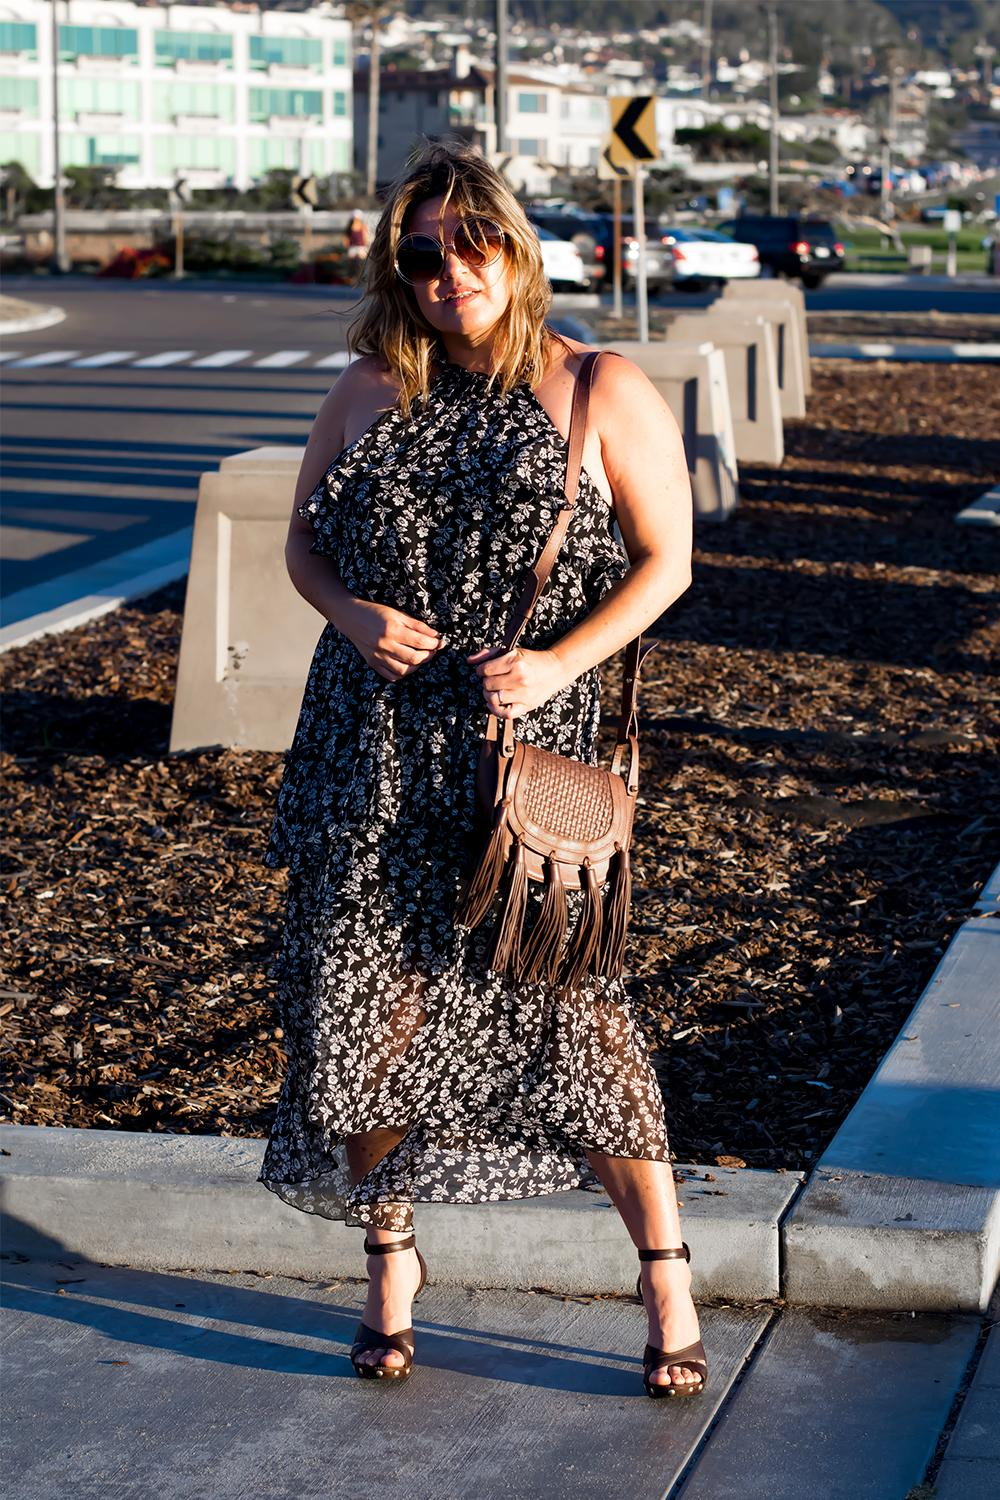 Tiered-Floral-Ruffle-Dress-The-Biggest-Summer-Trends-for-2017-Barefoot-in-LA-Fashion-Blog-Style-Ideas-Outfits-1244